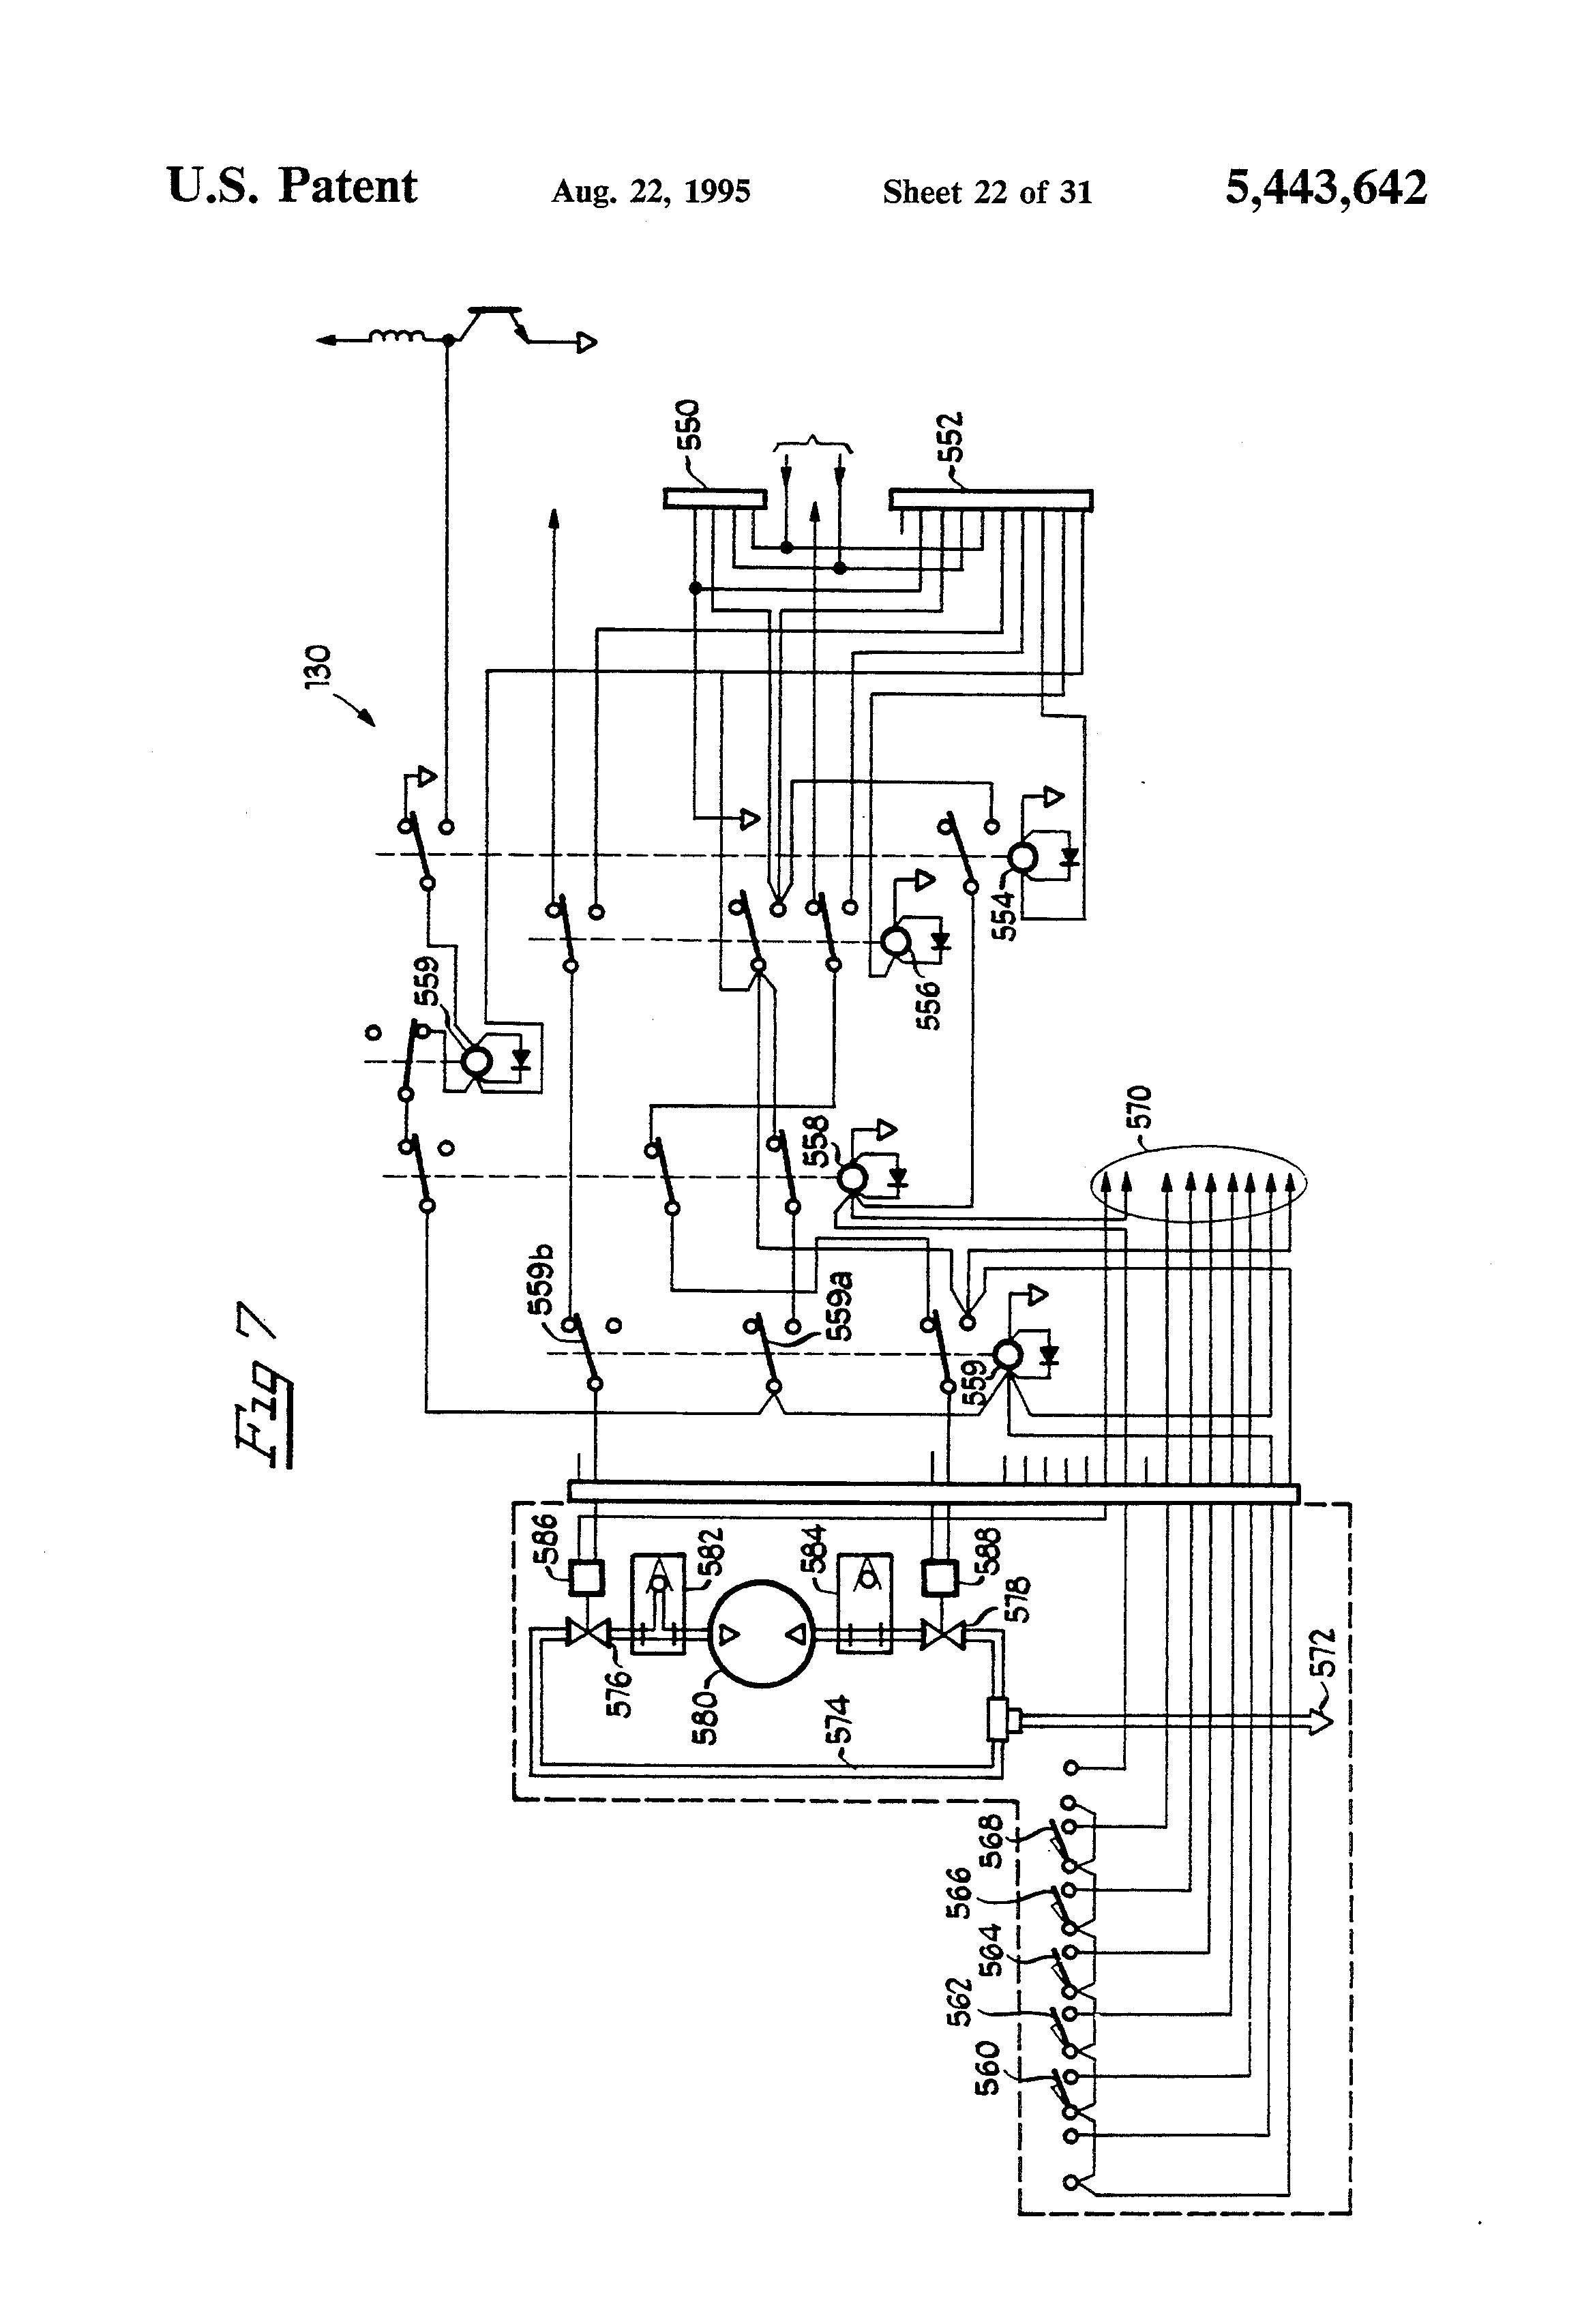 Paint Spray Booth Wiring Diagram